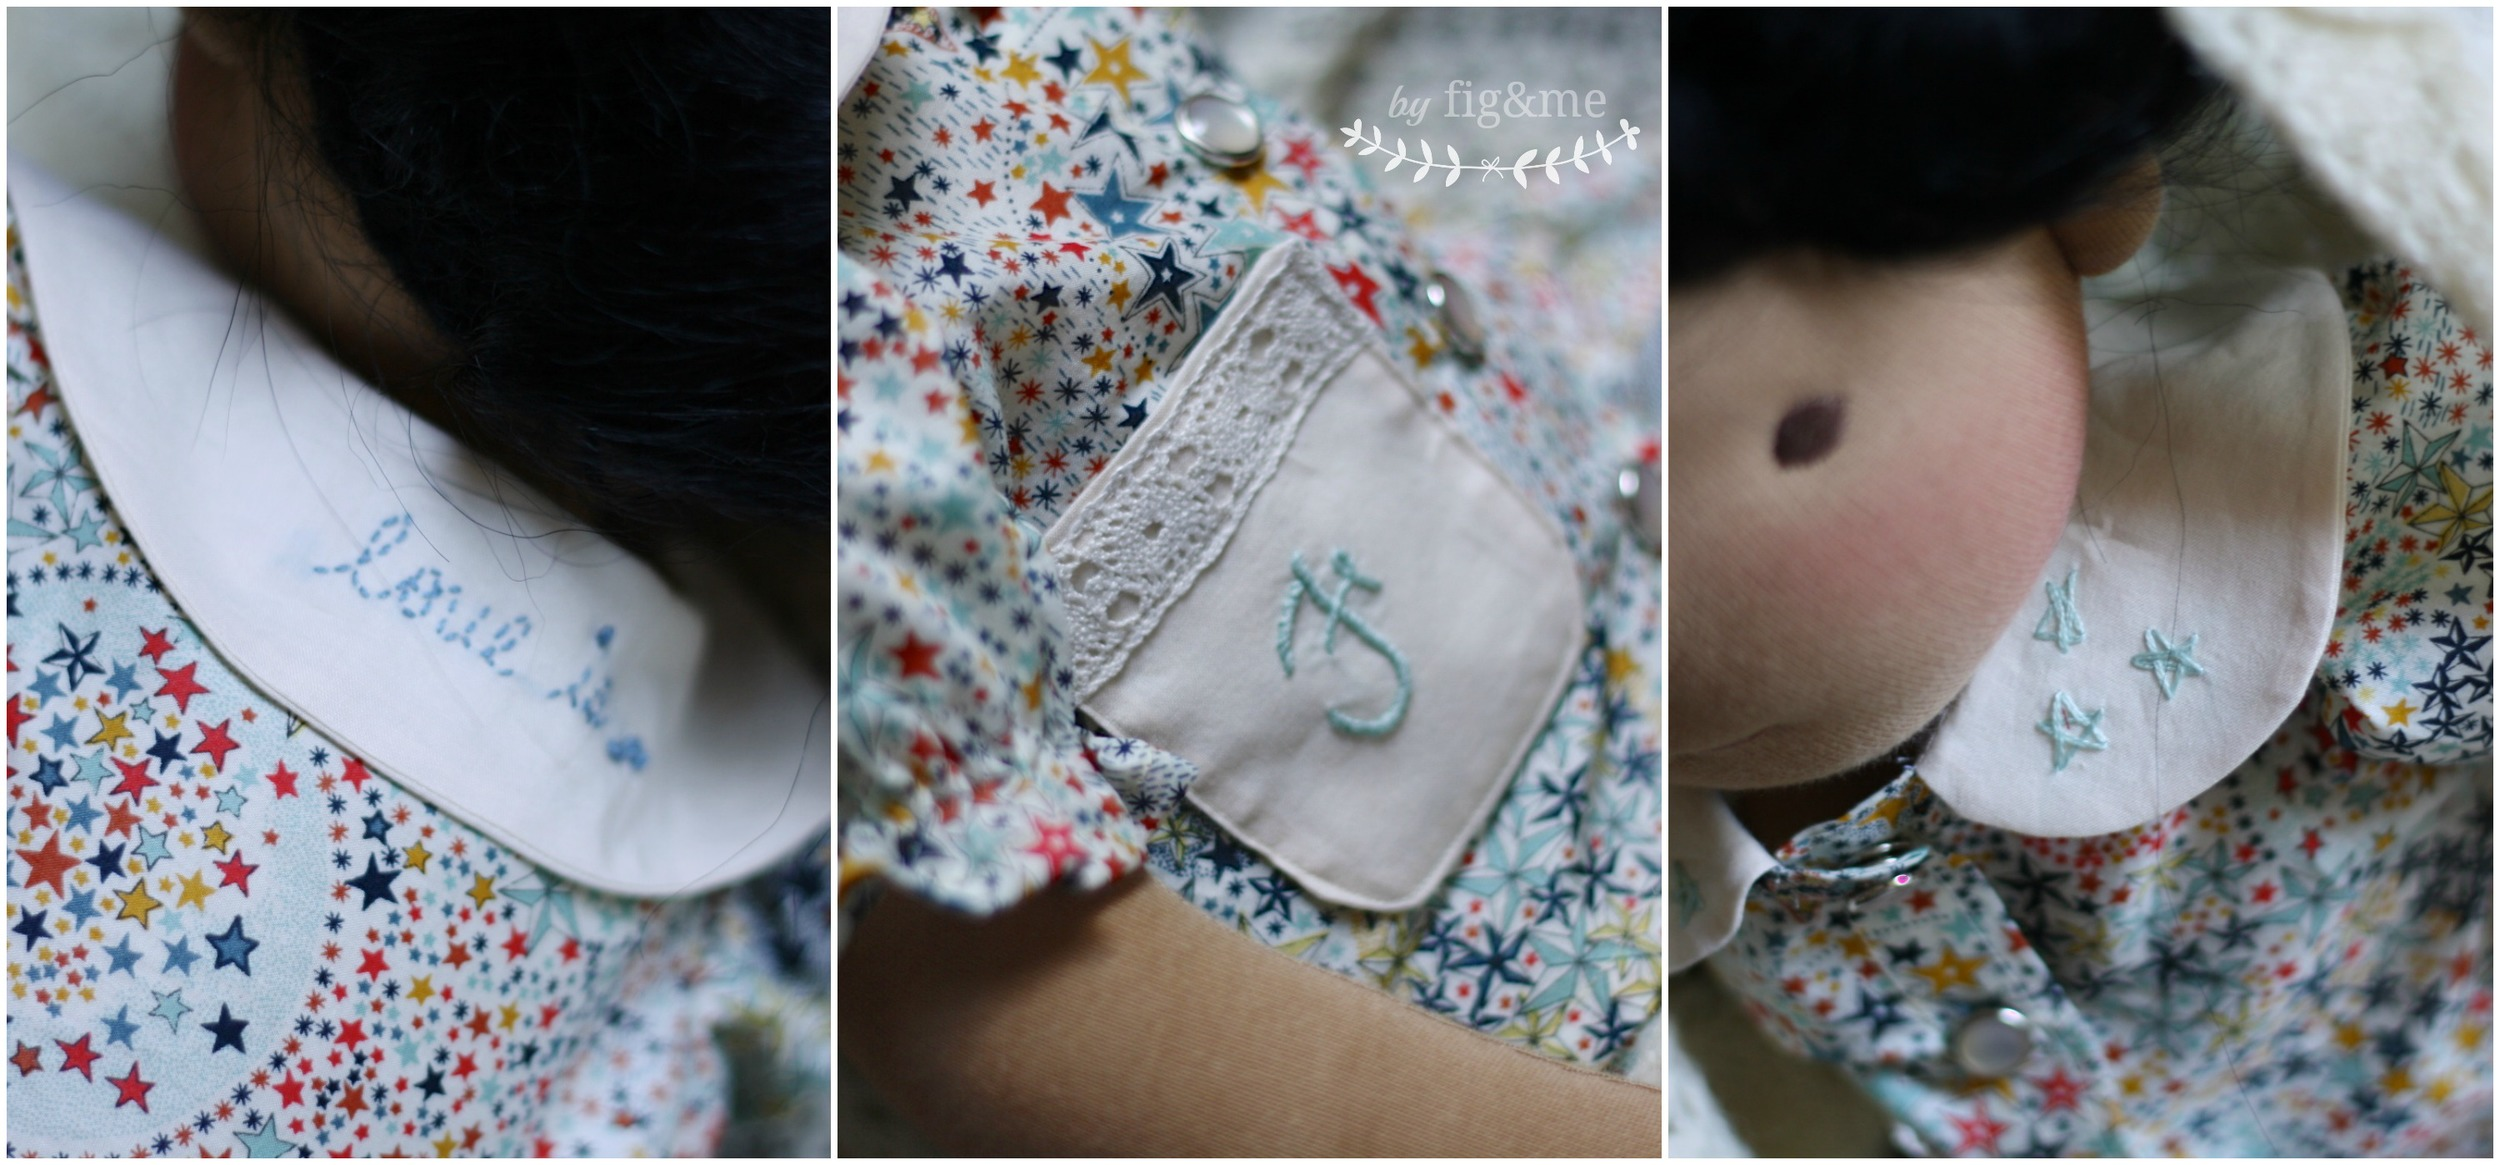 Doll pyjamas with Liberty fabric and pearl snaps, by Fig and me.